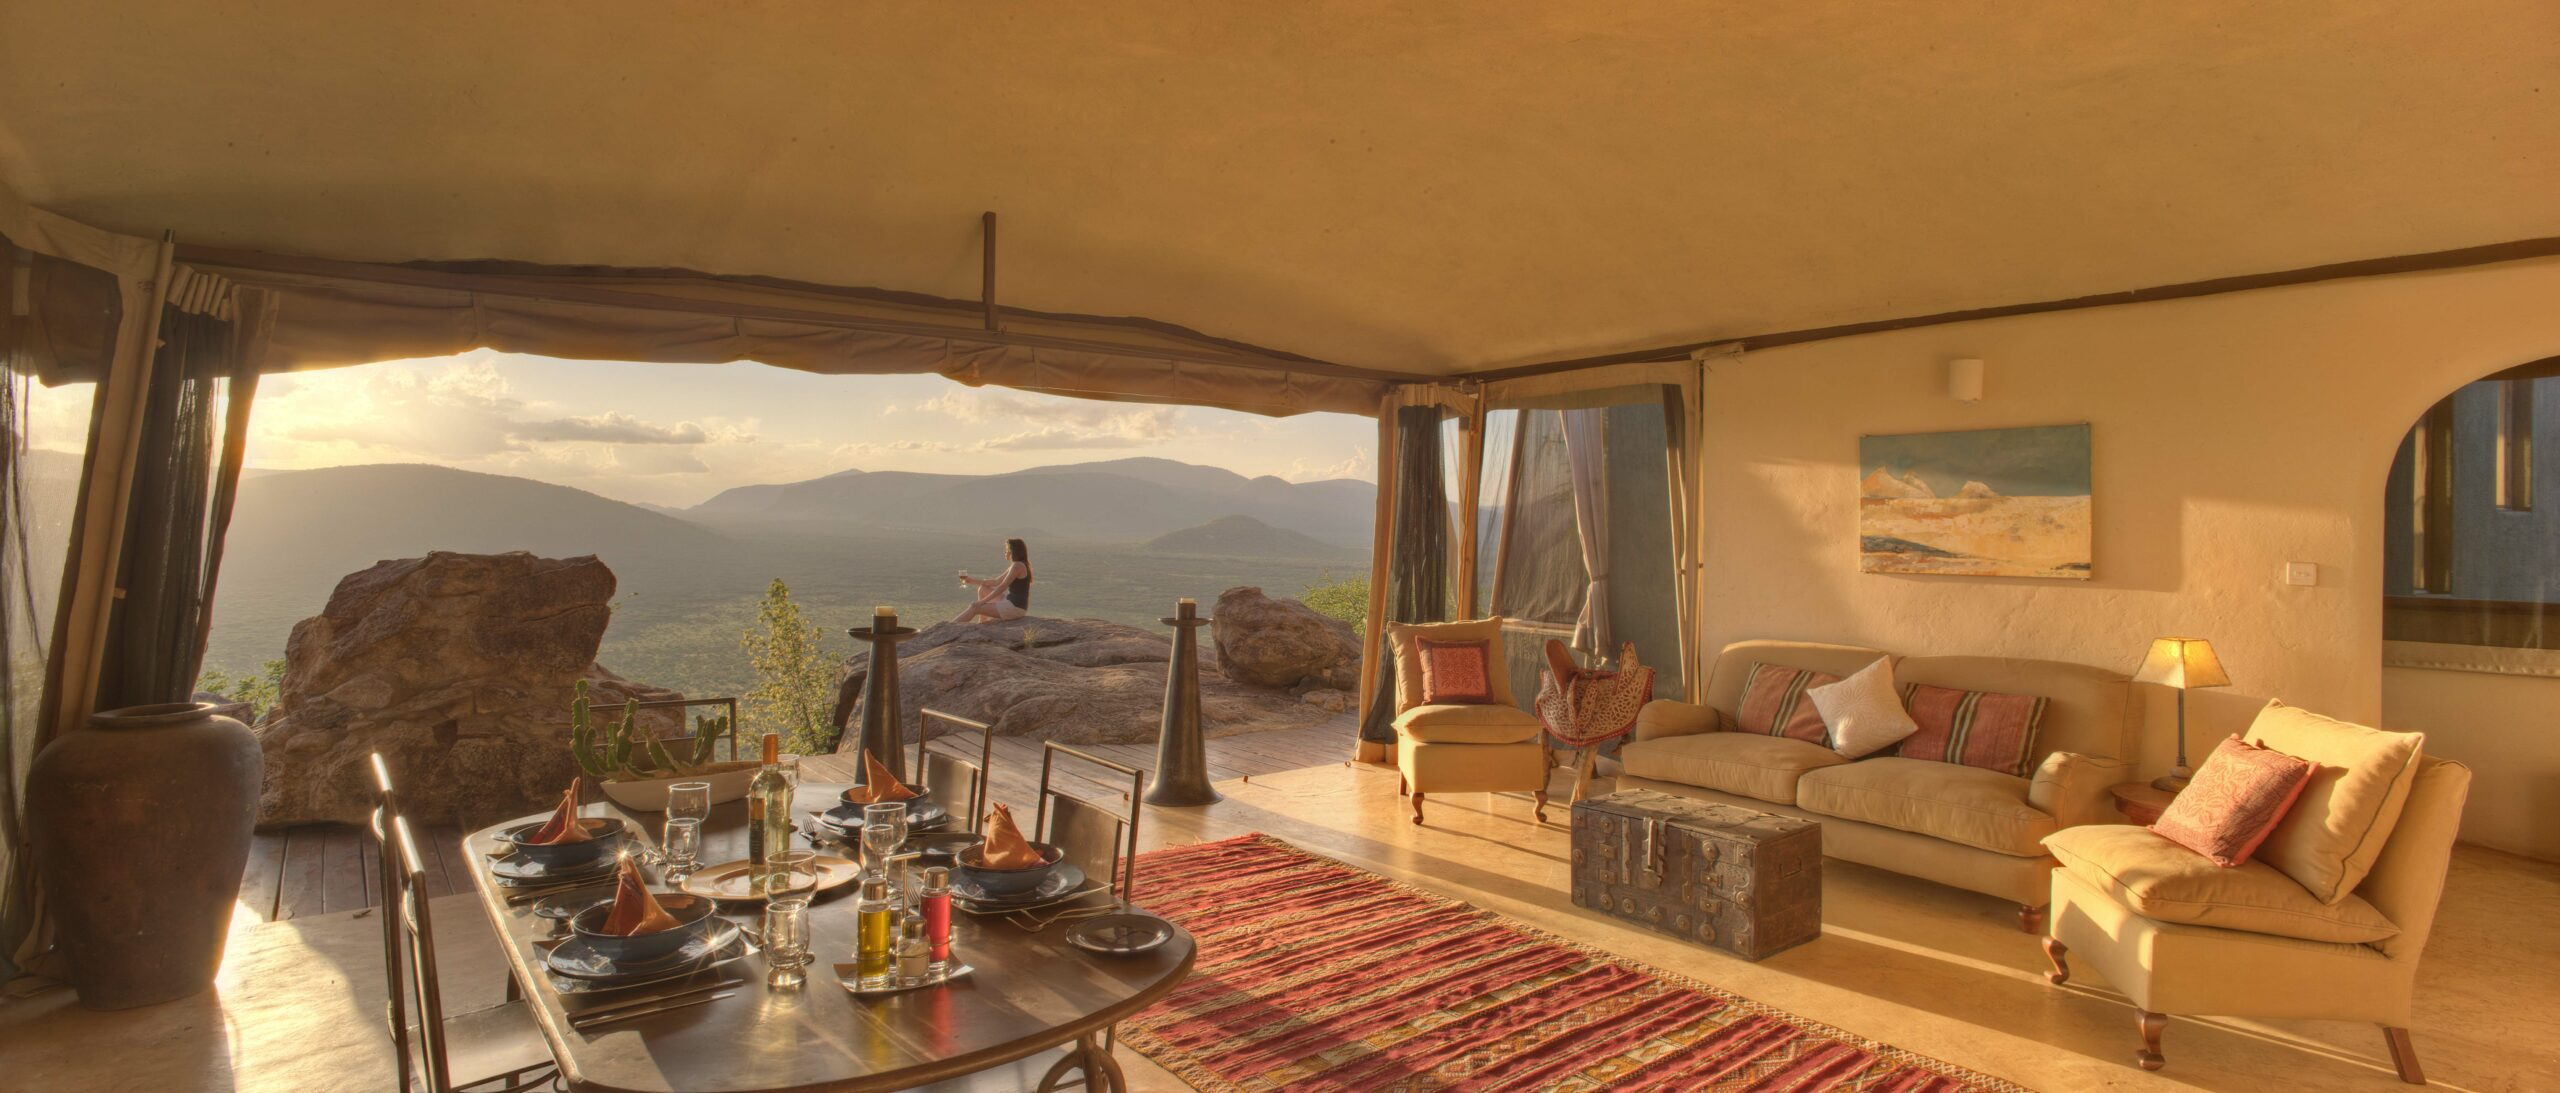 Samburu Saruni's Beautifully decorated room with red rug and open side with views of of a rugged landscape